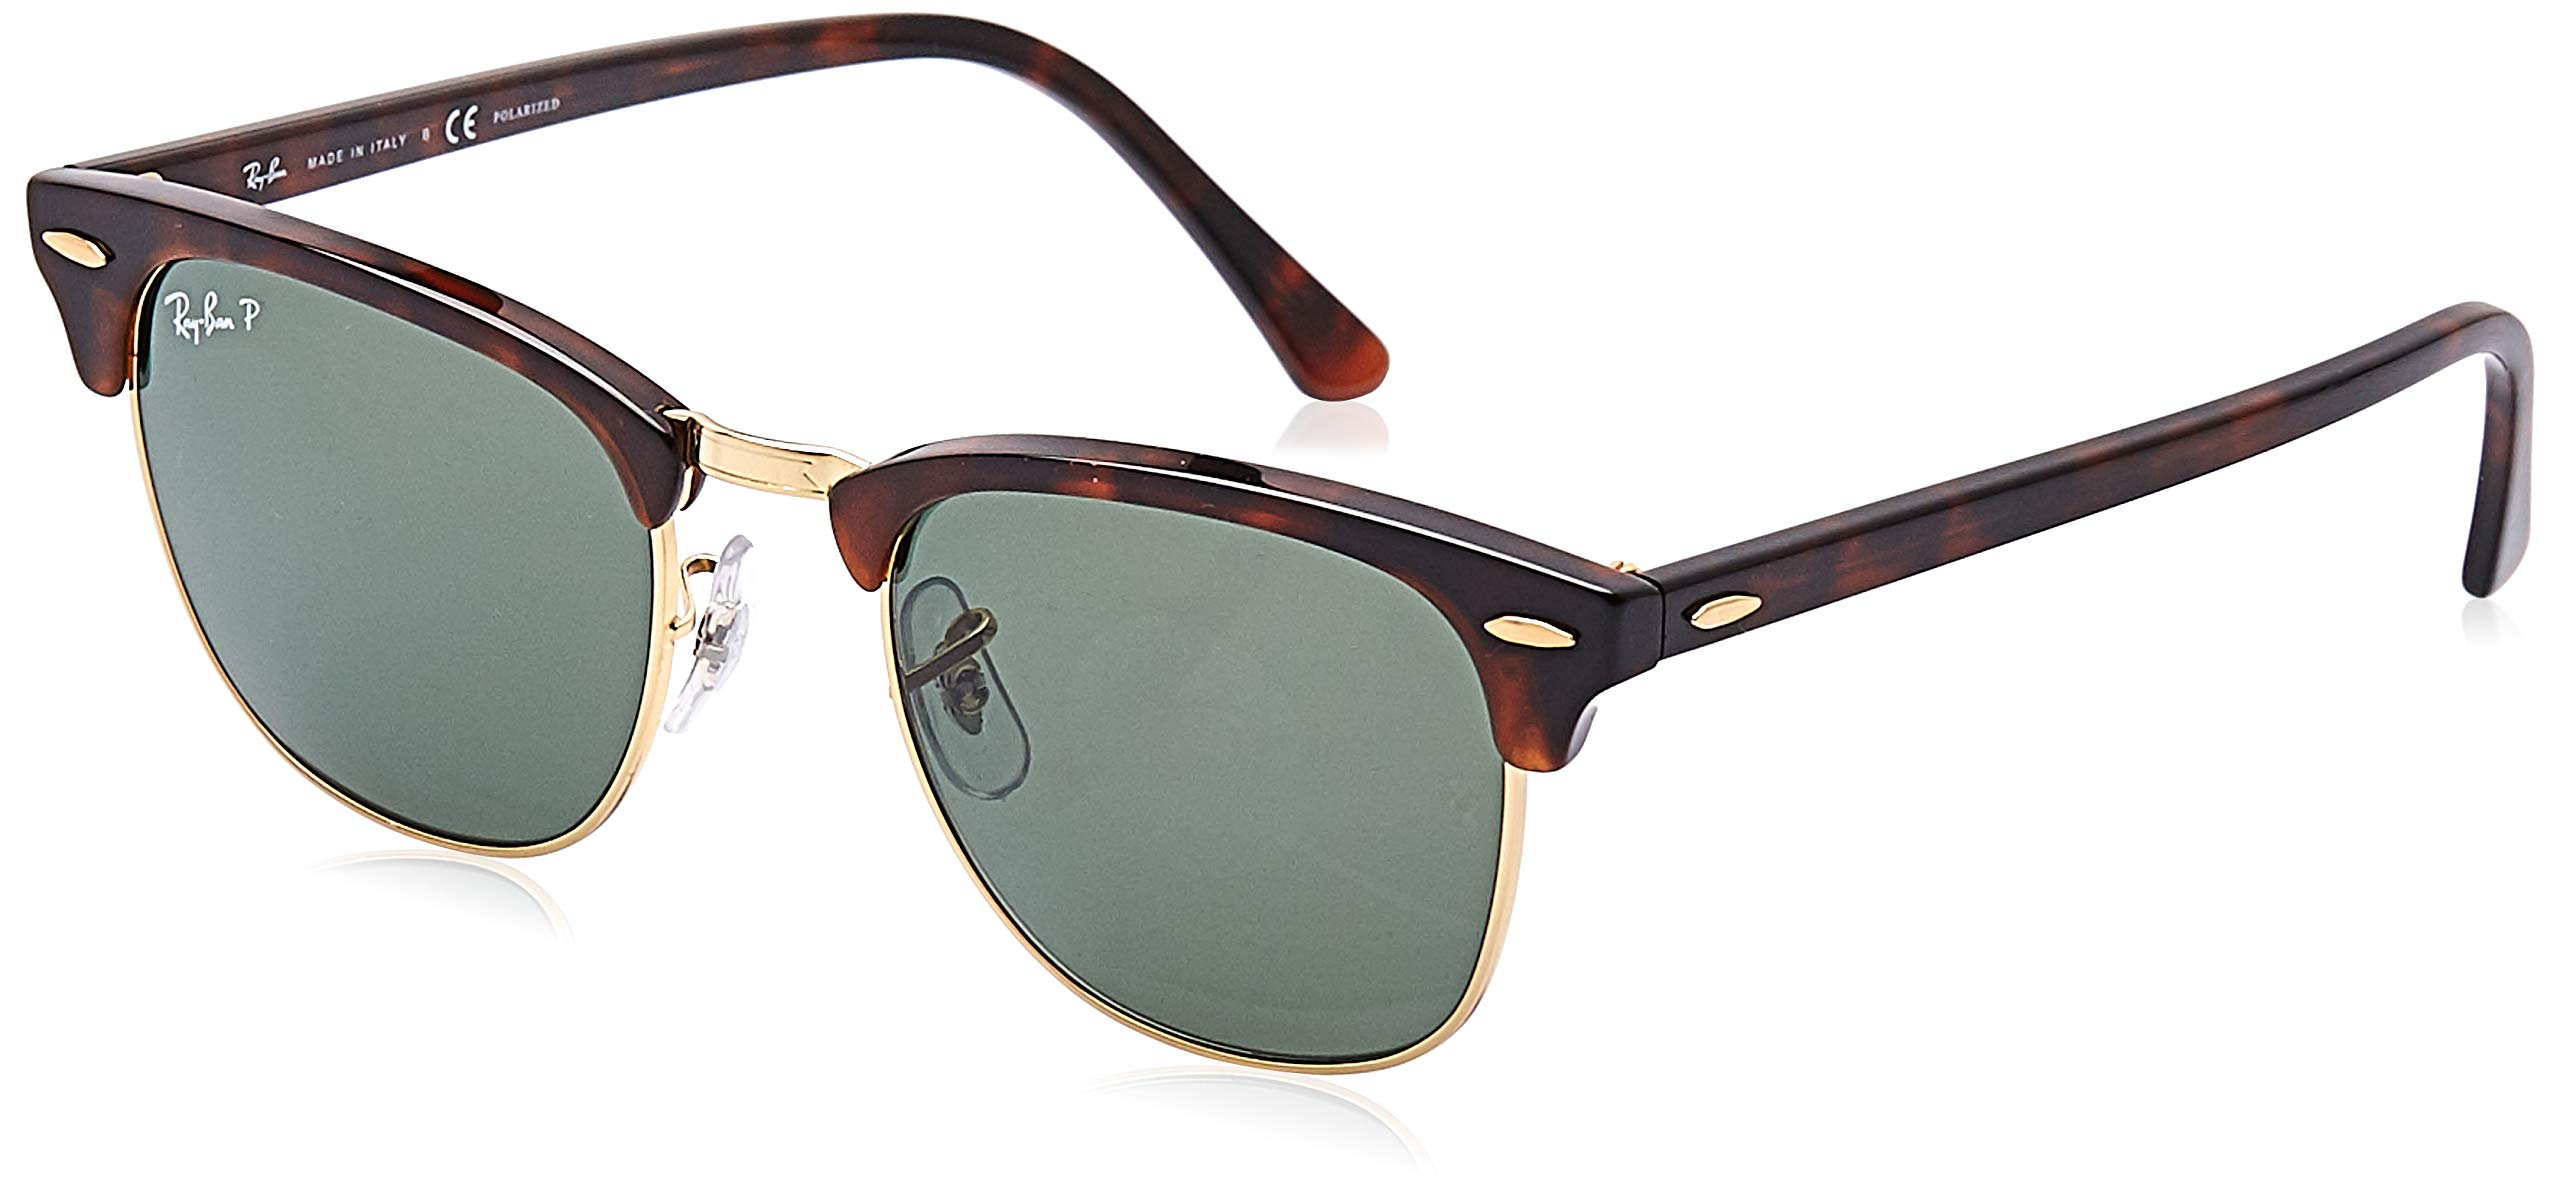 RAY-BAN RB3016 Clubmaster Square Sunglasses, Red Havana/Polarized Green, 51 mm by RAY-BAN